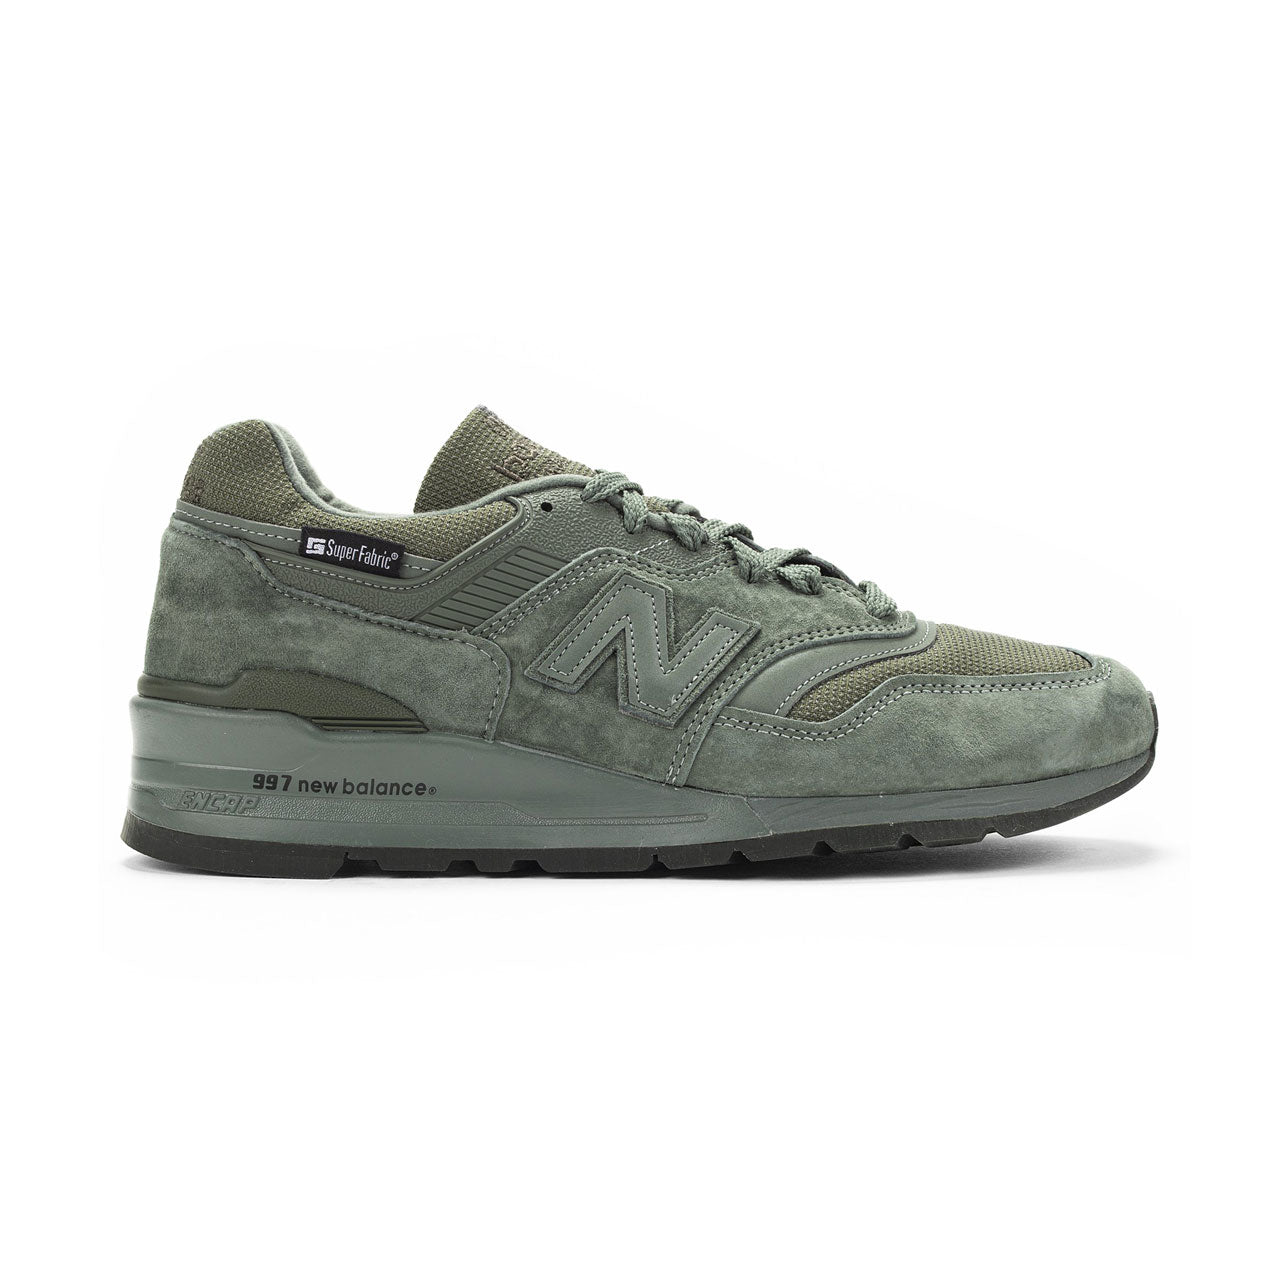 New Balance 997 SuperFabric Made in USA Sneaker